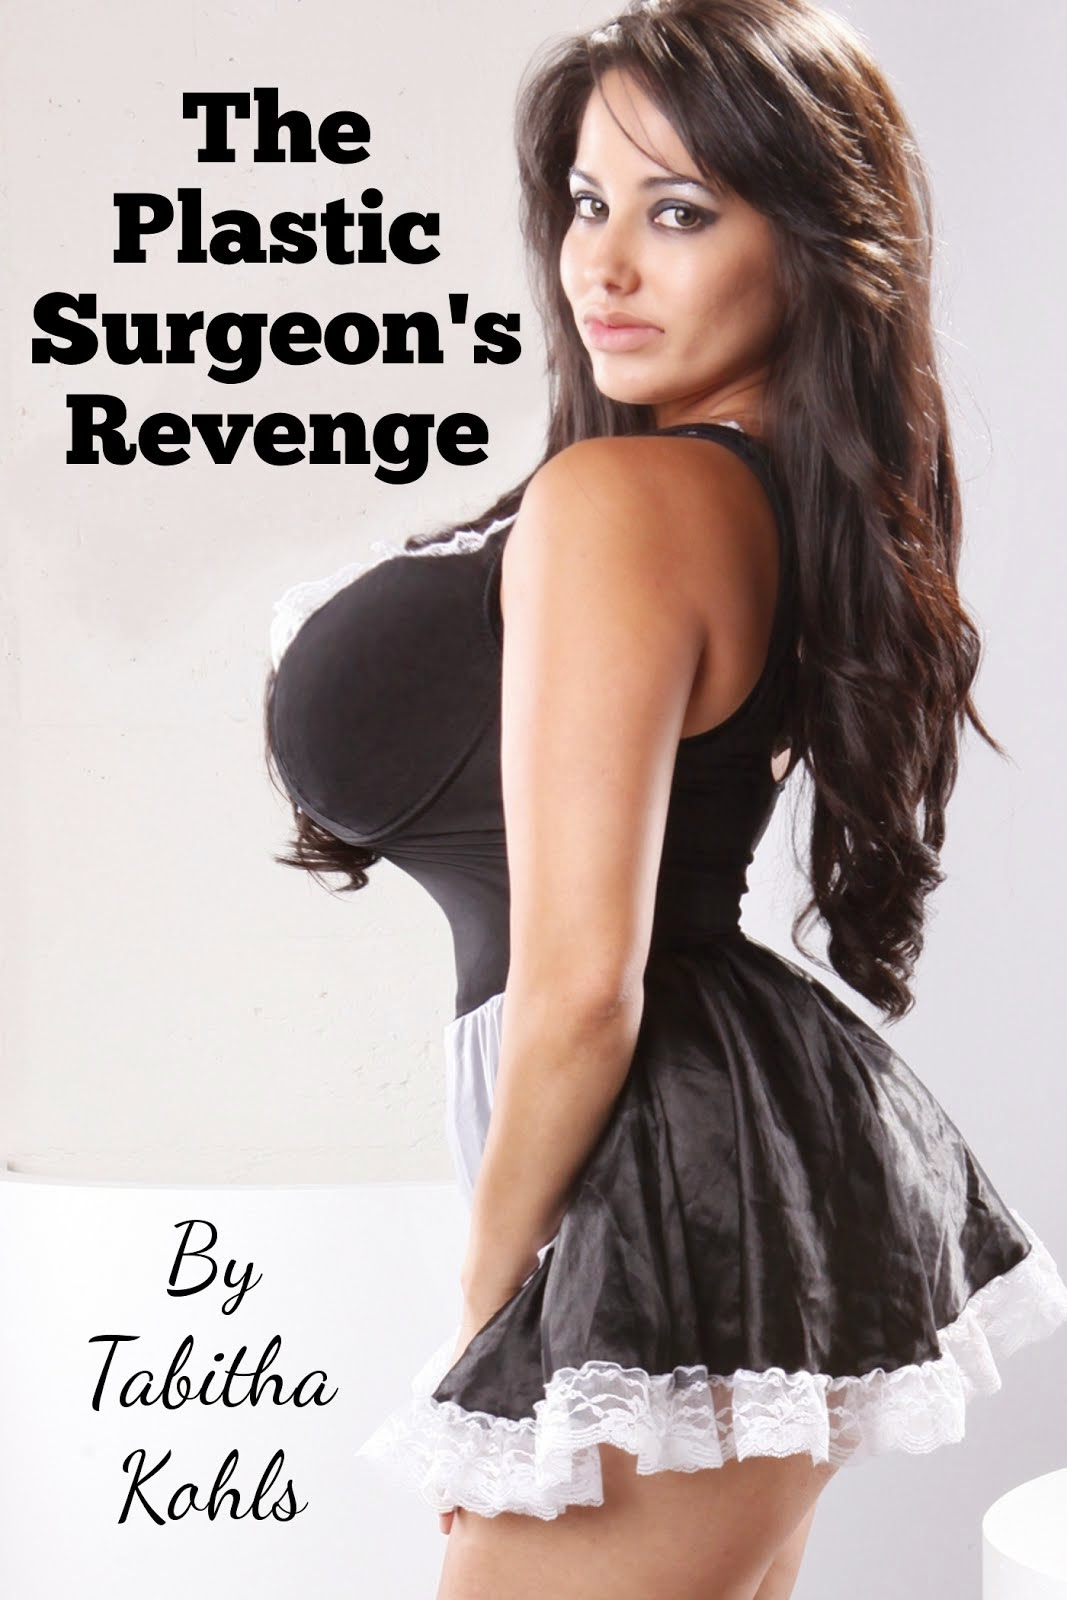 The Plastic Surgeon's Revenge